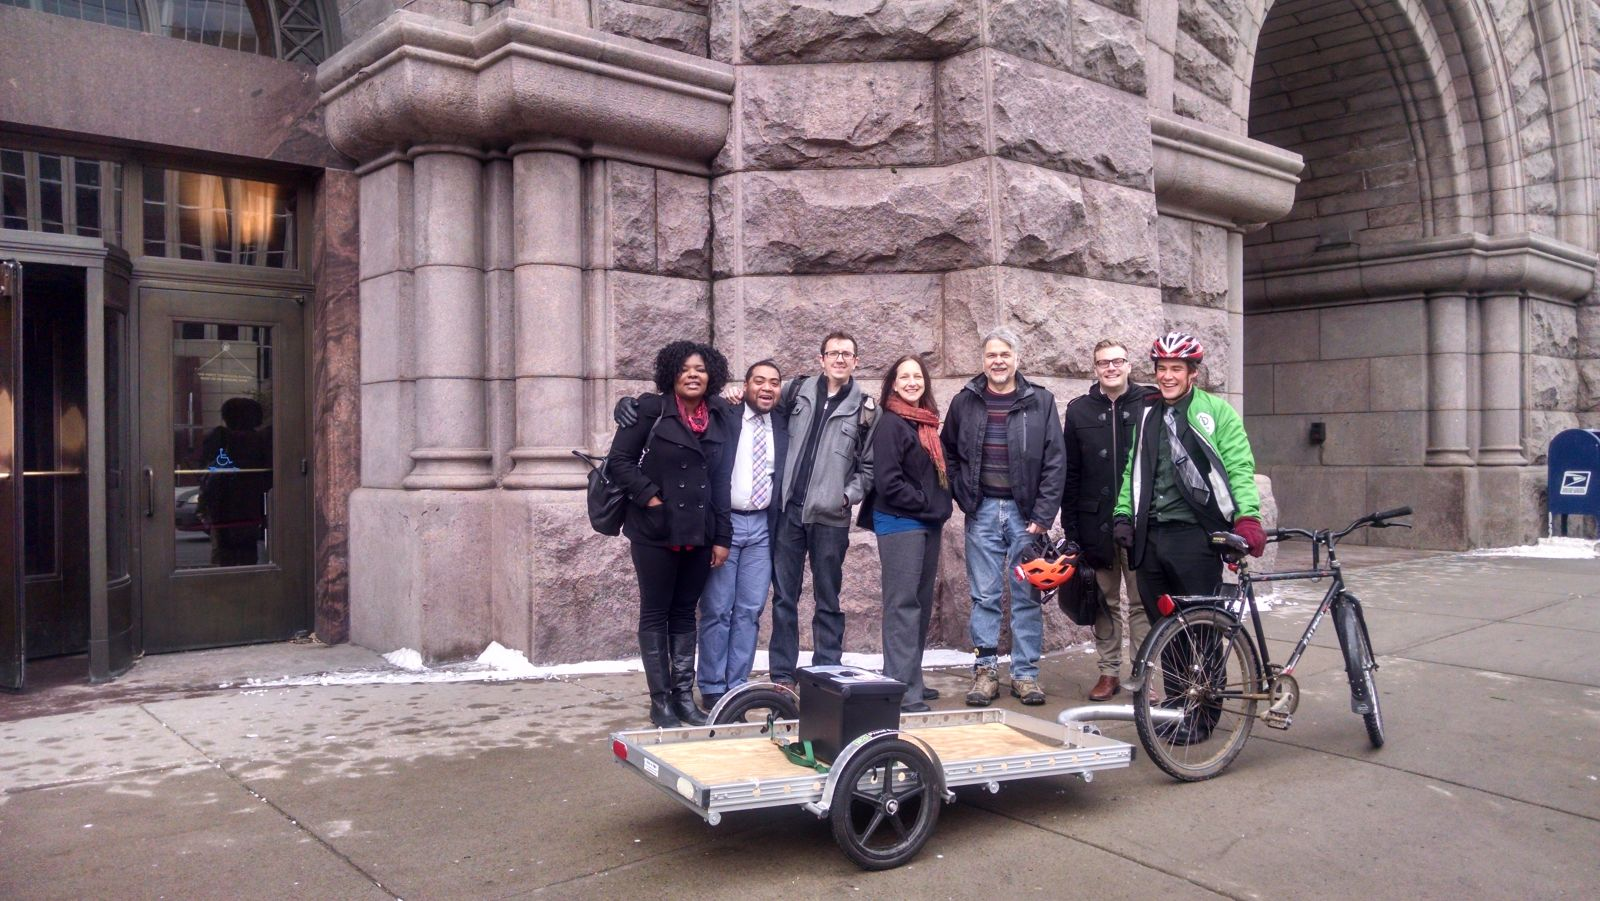 12-2-14_Postcard_Delivery_Event-_Trailer_outside_City_Hall.jpg